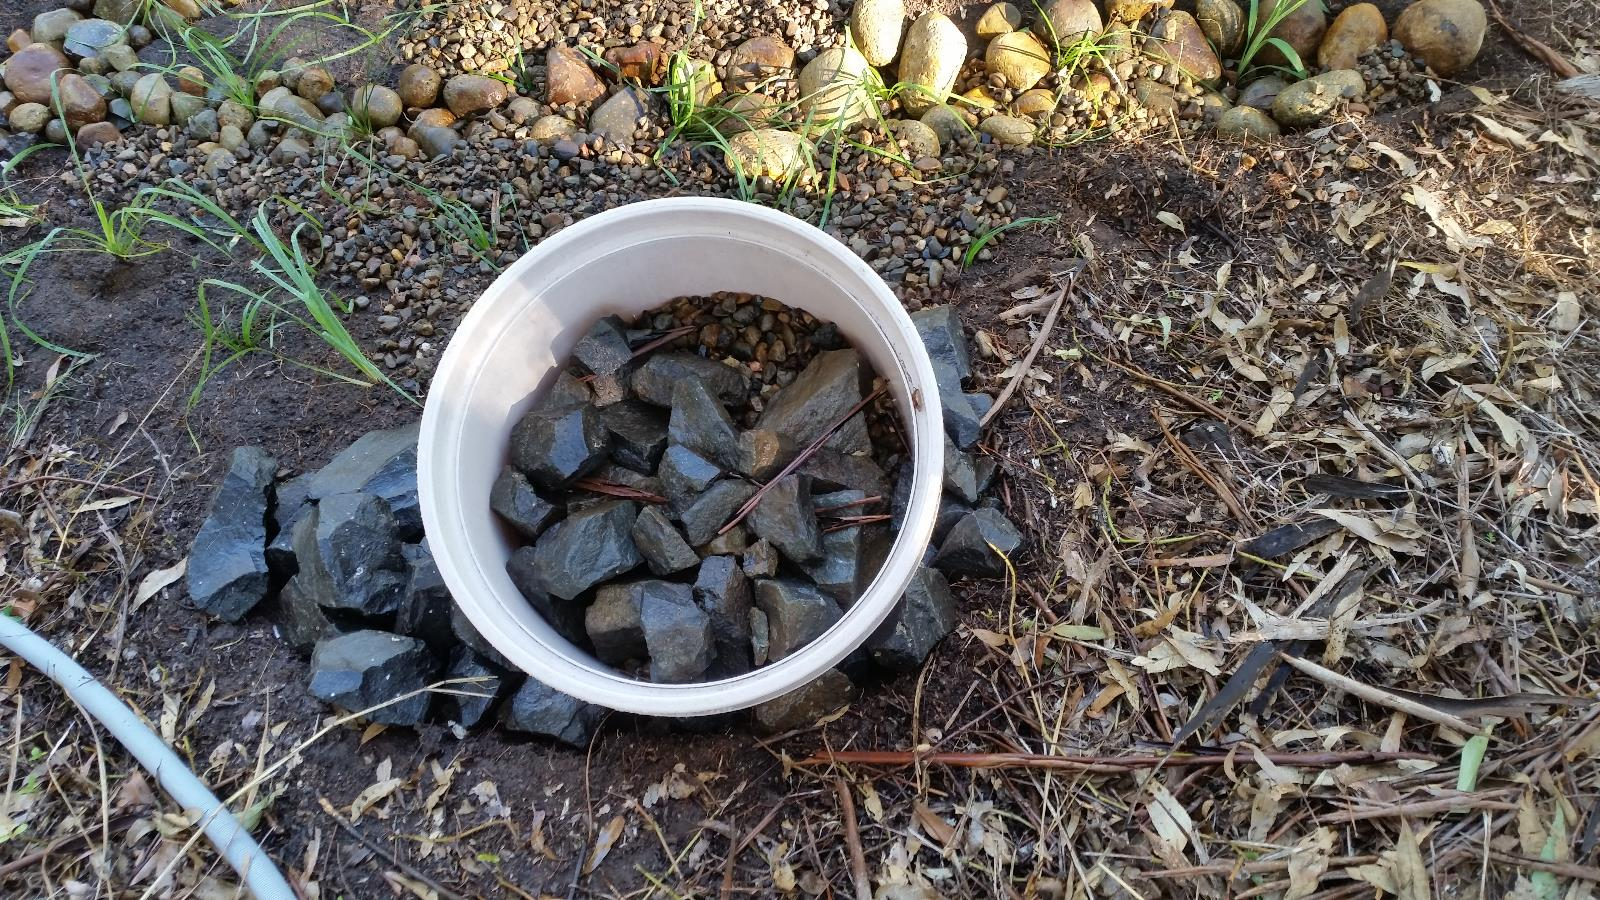 Building Grey Water Filter Pond - Reservoir and Rocks